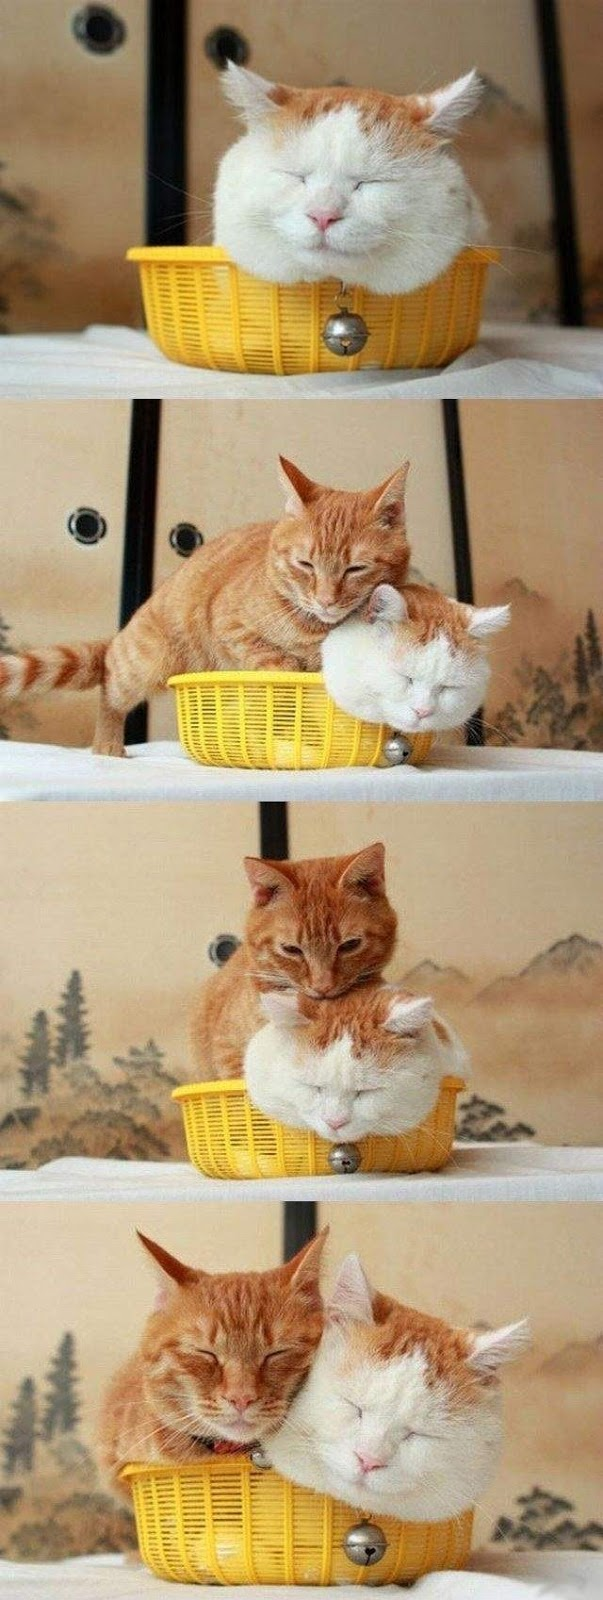 Funny cats - part 270, cute cat images, best funny cat, cats